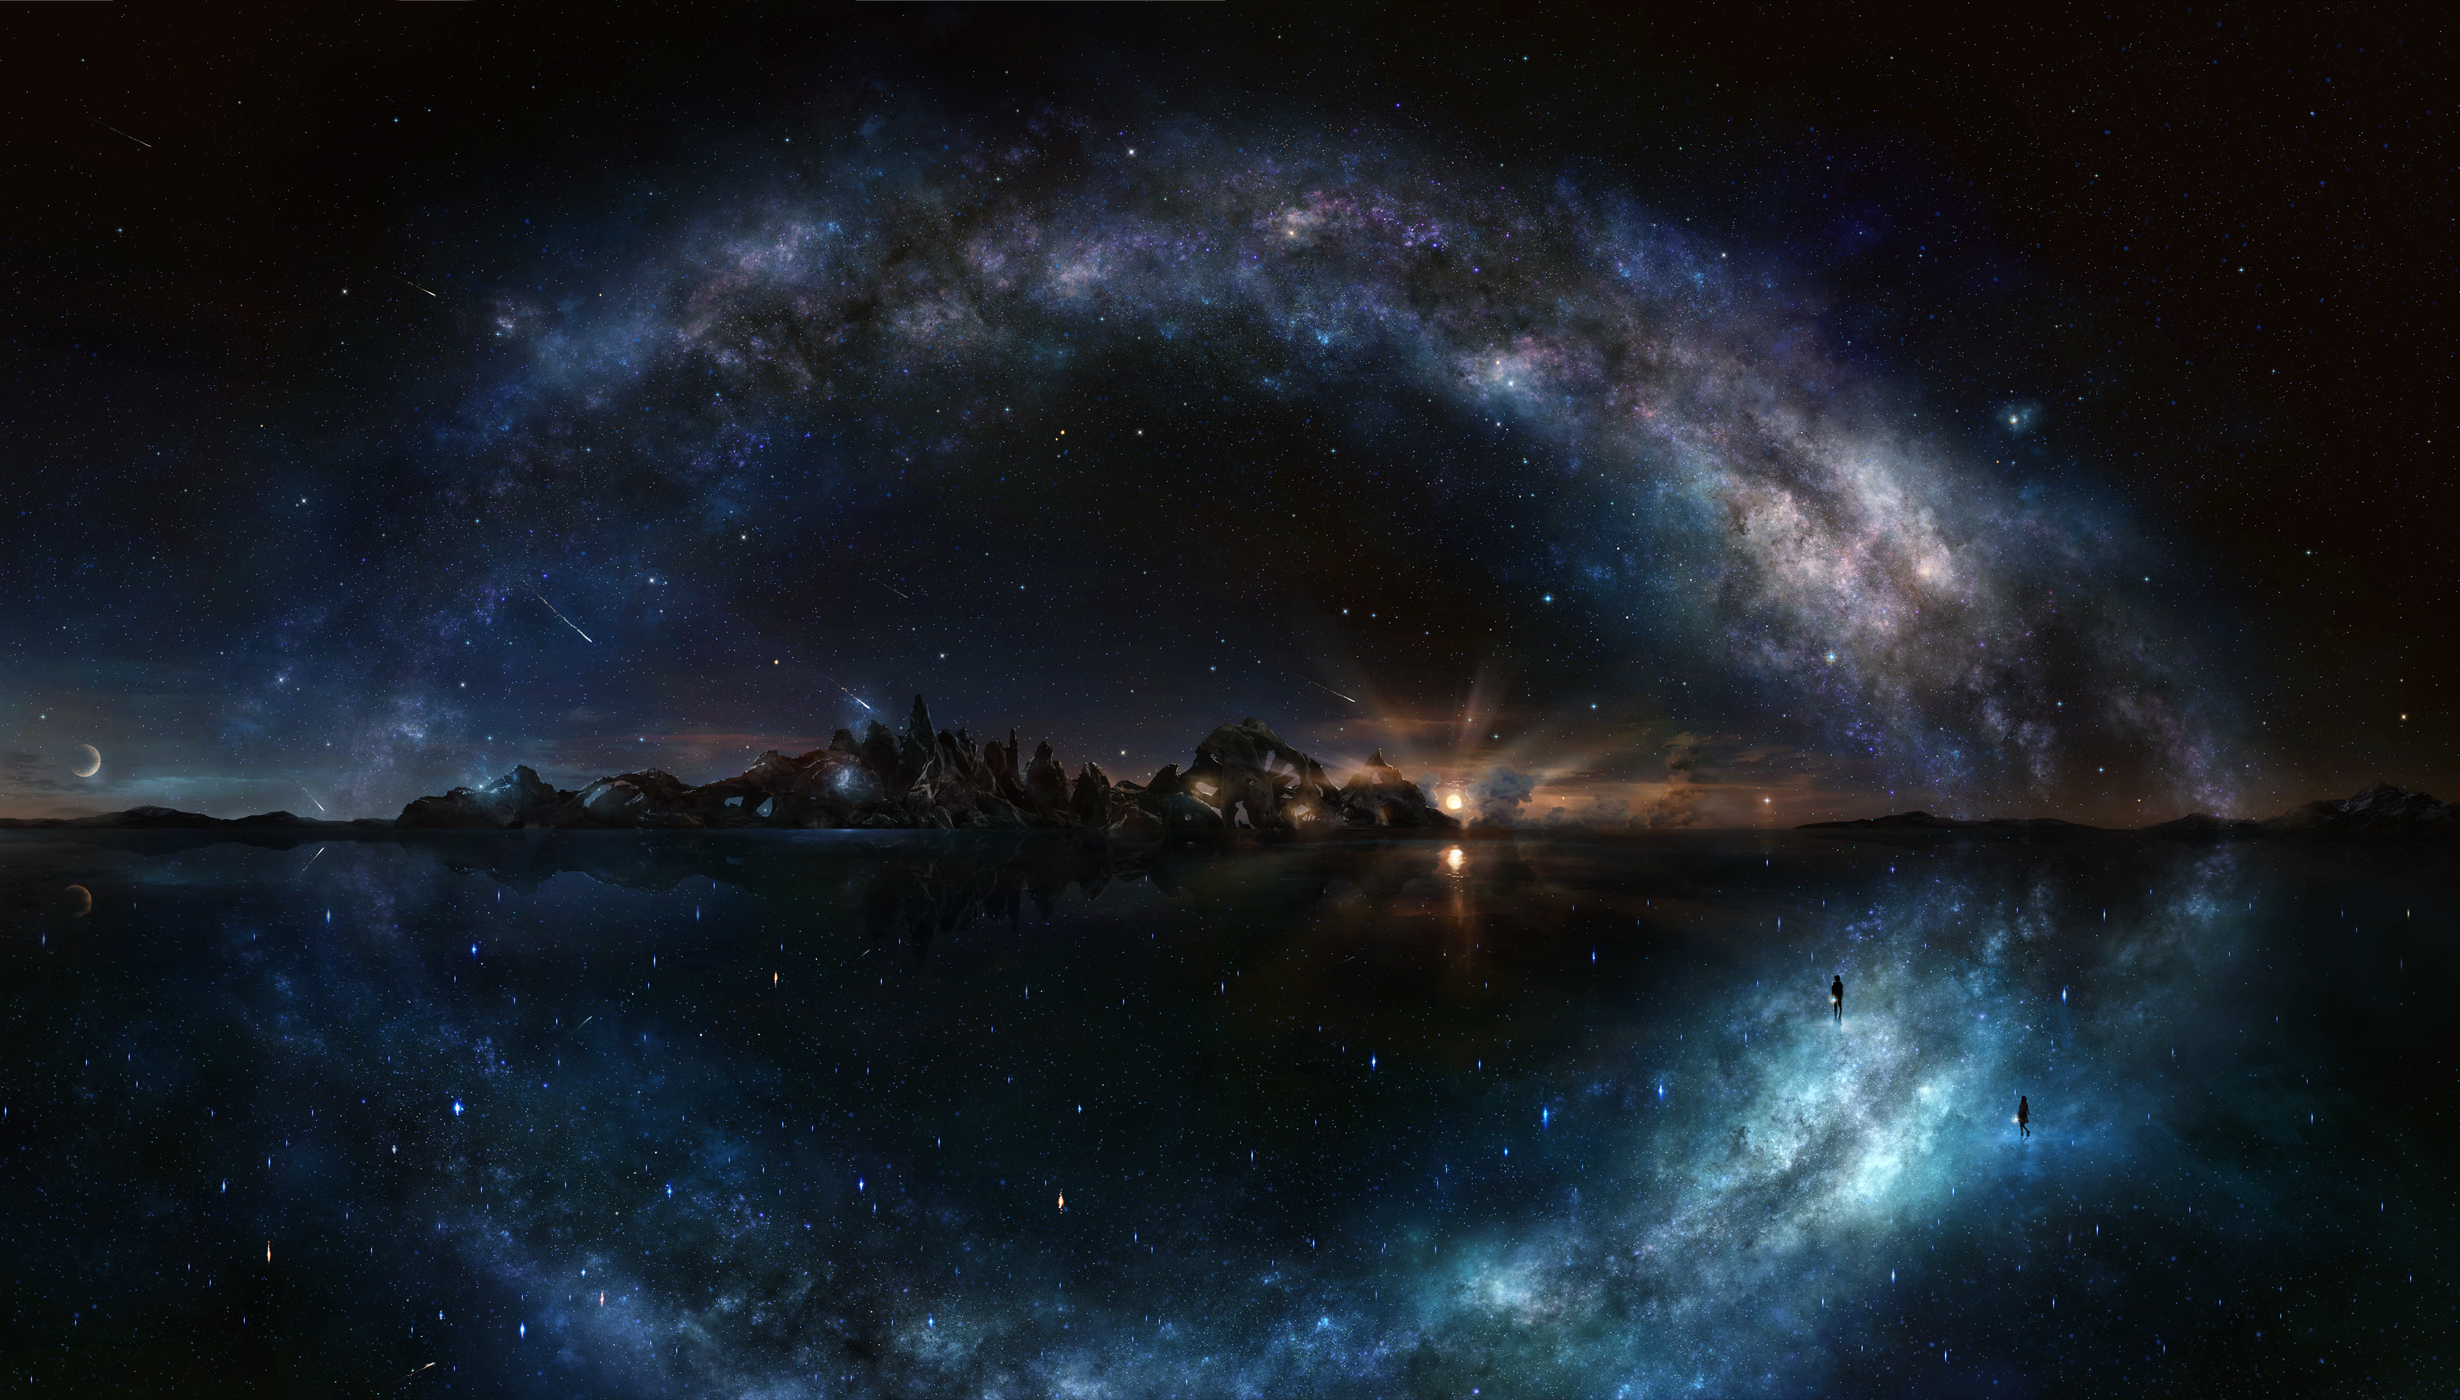 night sky wallpaper,sky,nature,outer space,galaxy,atmosphere